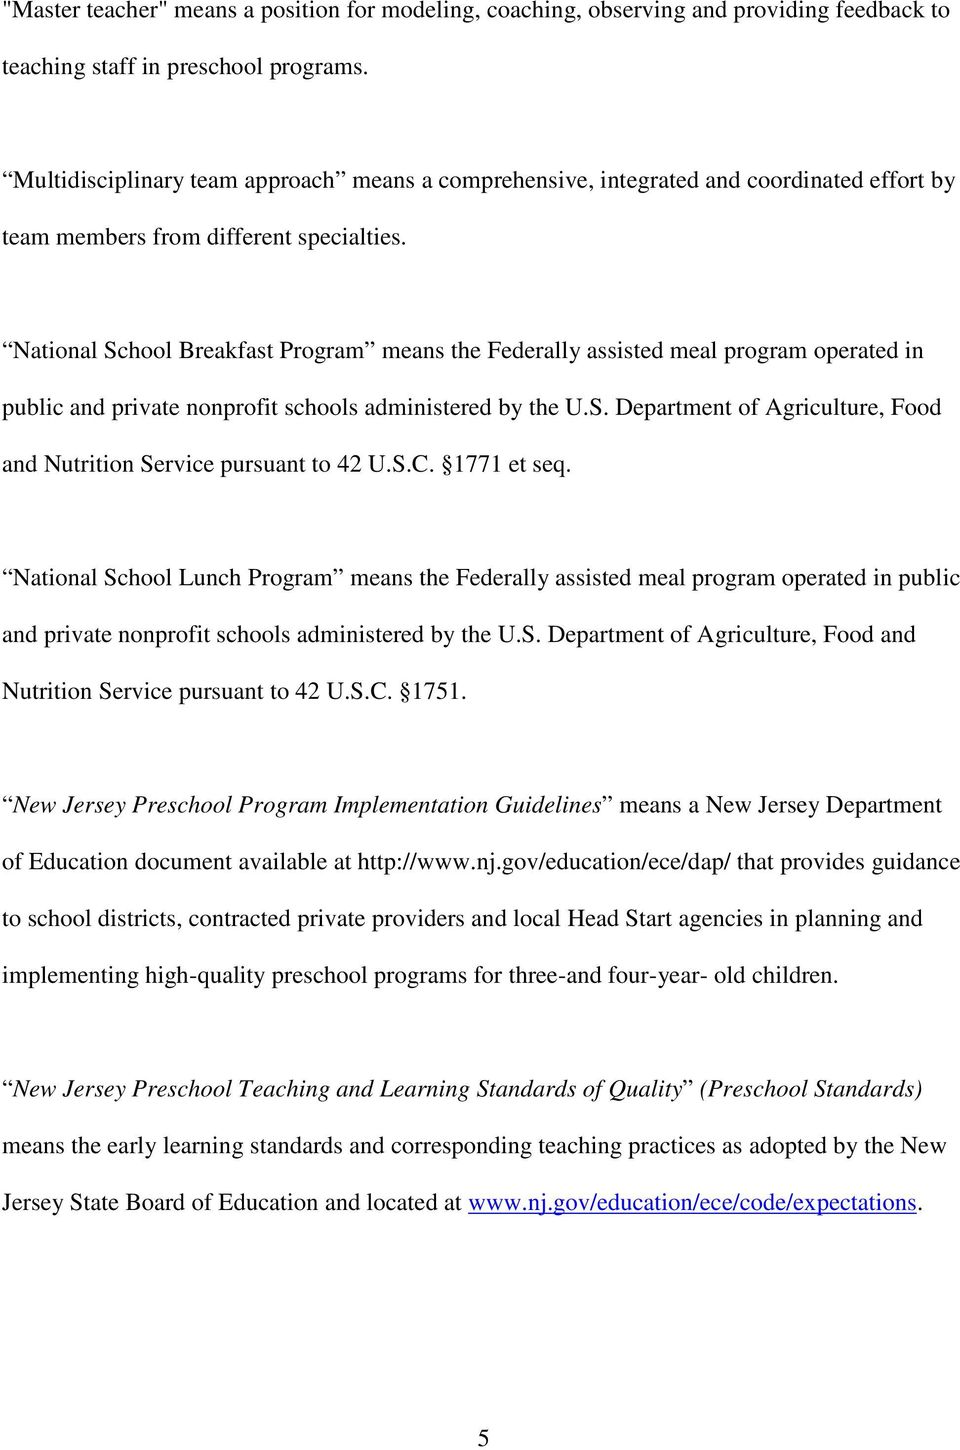 National School Breakfast Program means the Federally assisted meal program operated in public and private nonprofit schools administered by the U.S. Department of Agriculture, Food and Nutrition Service pursuant to 42 U.